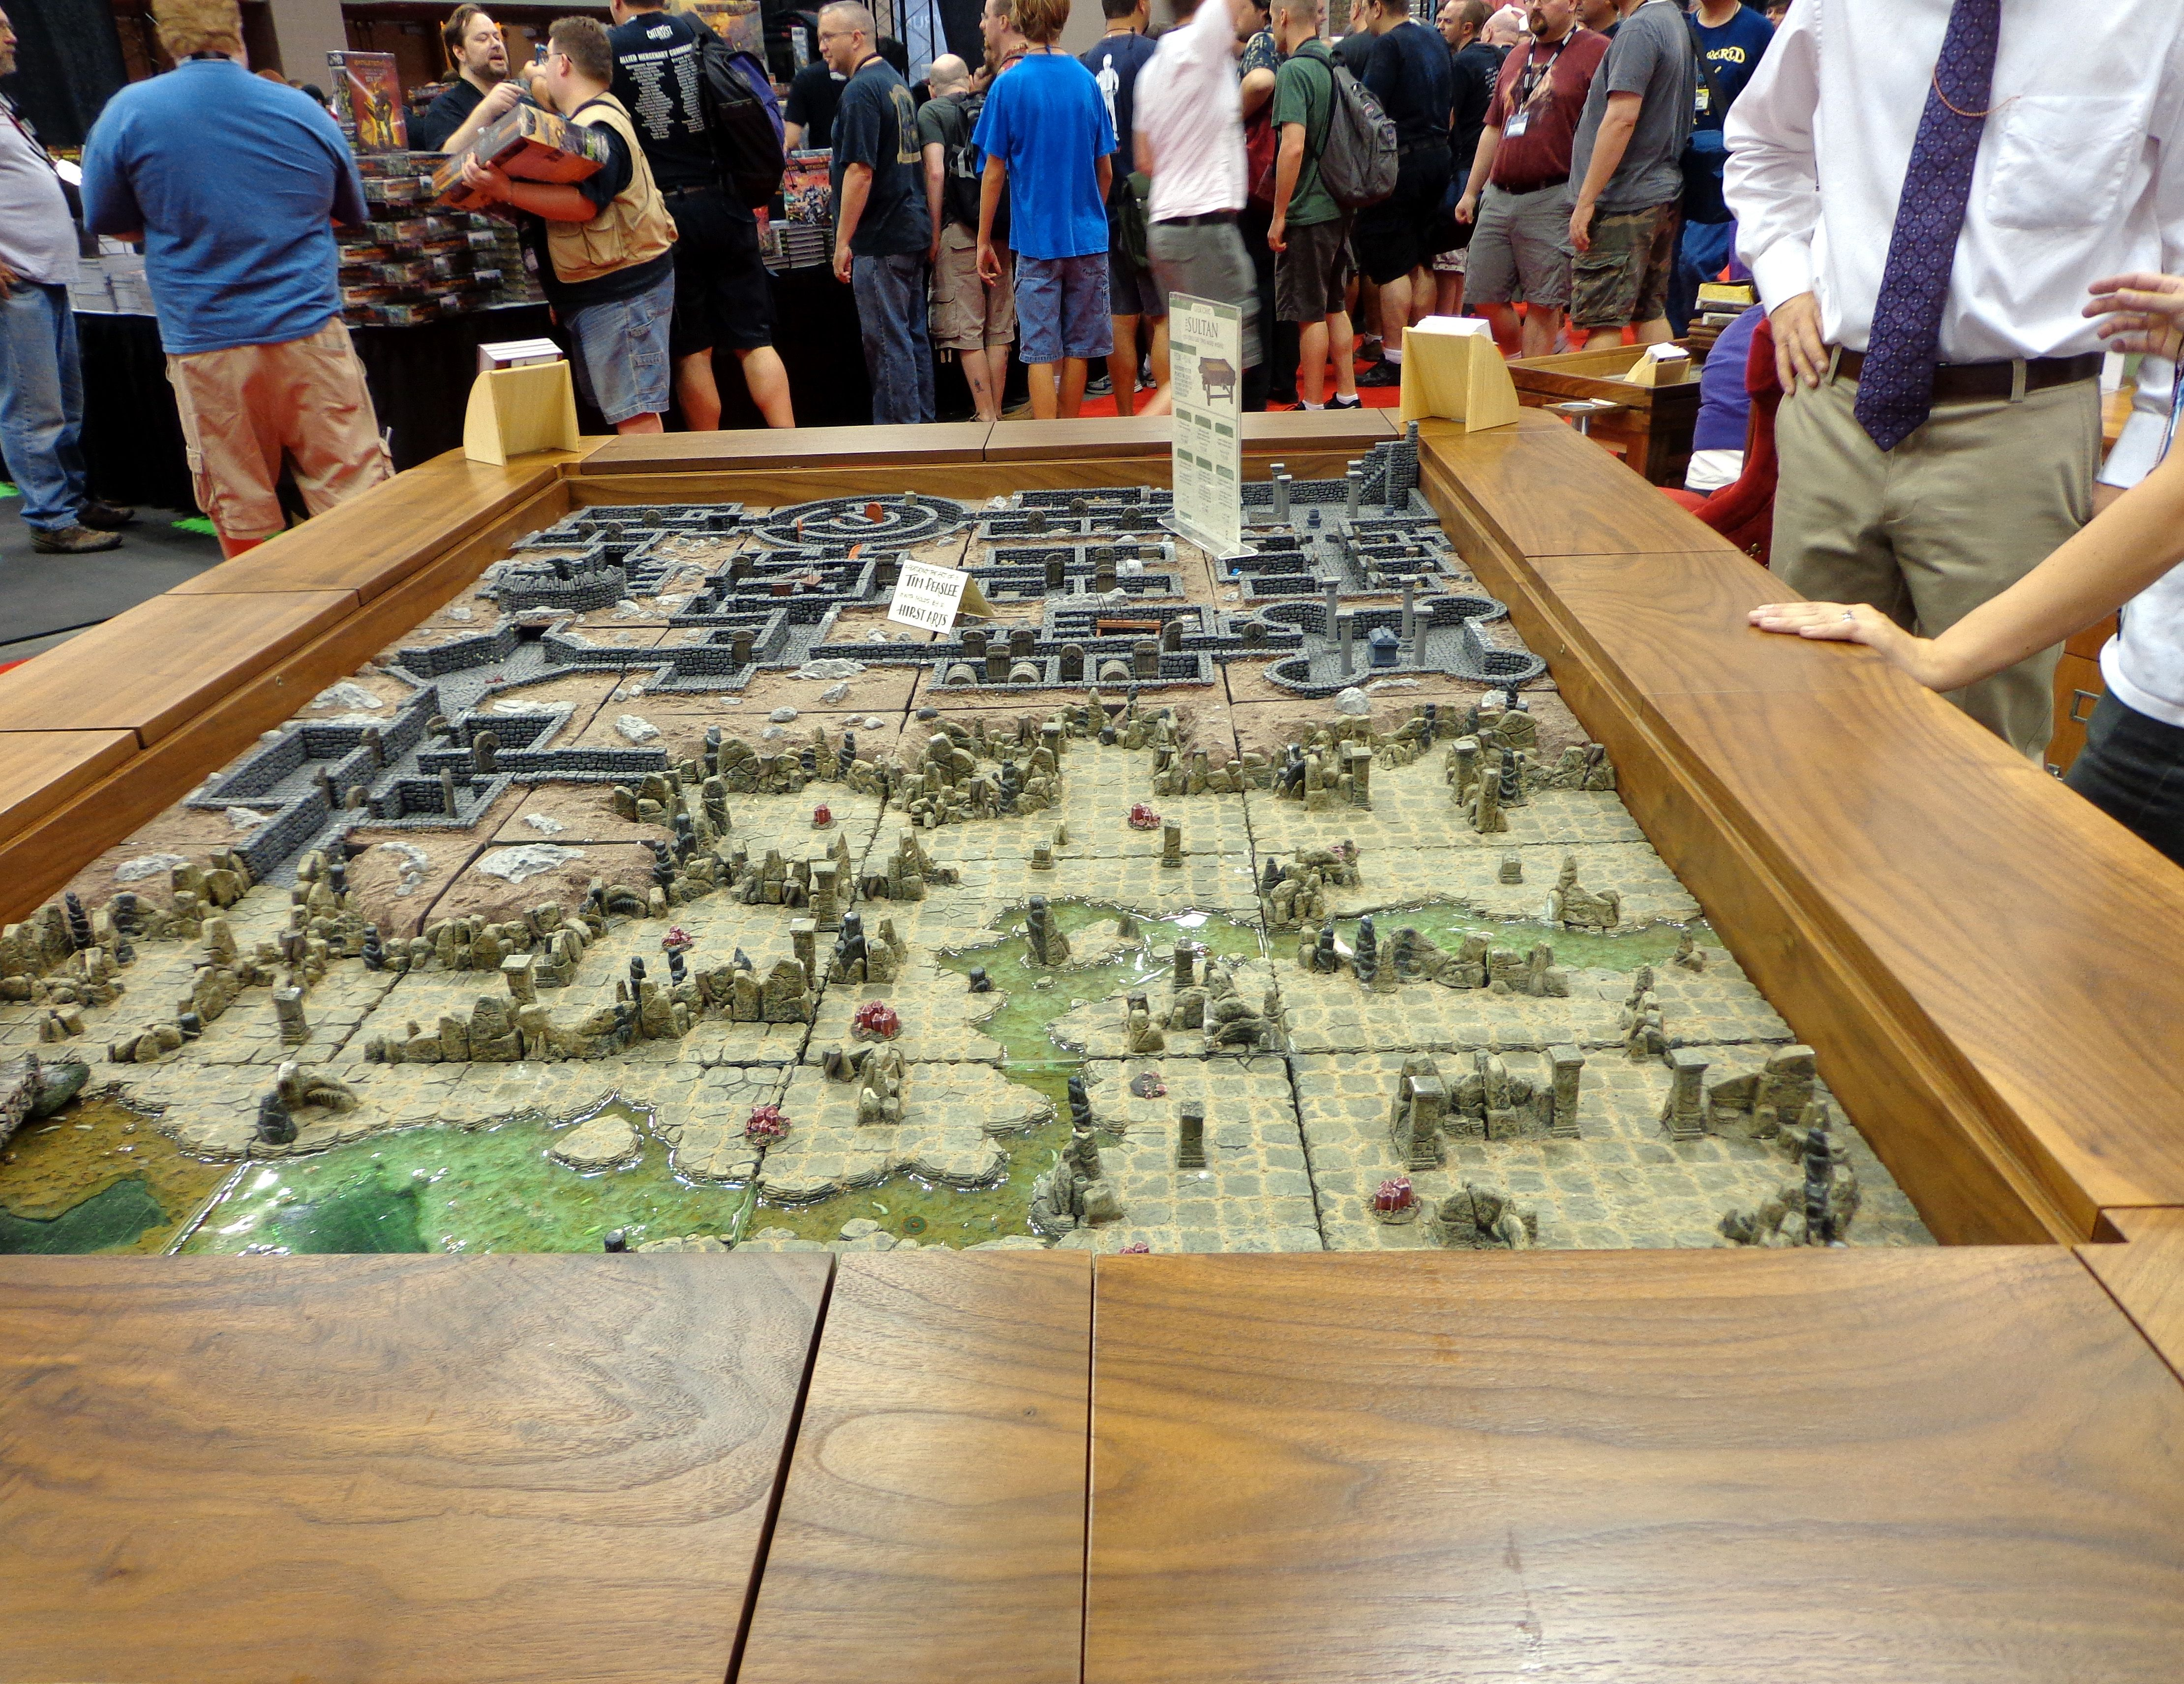 Charming Board Game Table, Table Games, Game Tables, Board Games, Game Terrain,  Gaming Rooms, Game Room, Men Cave, Tabletop